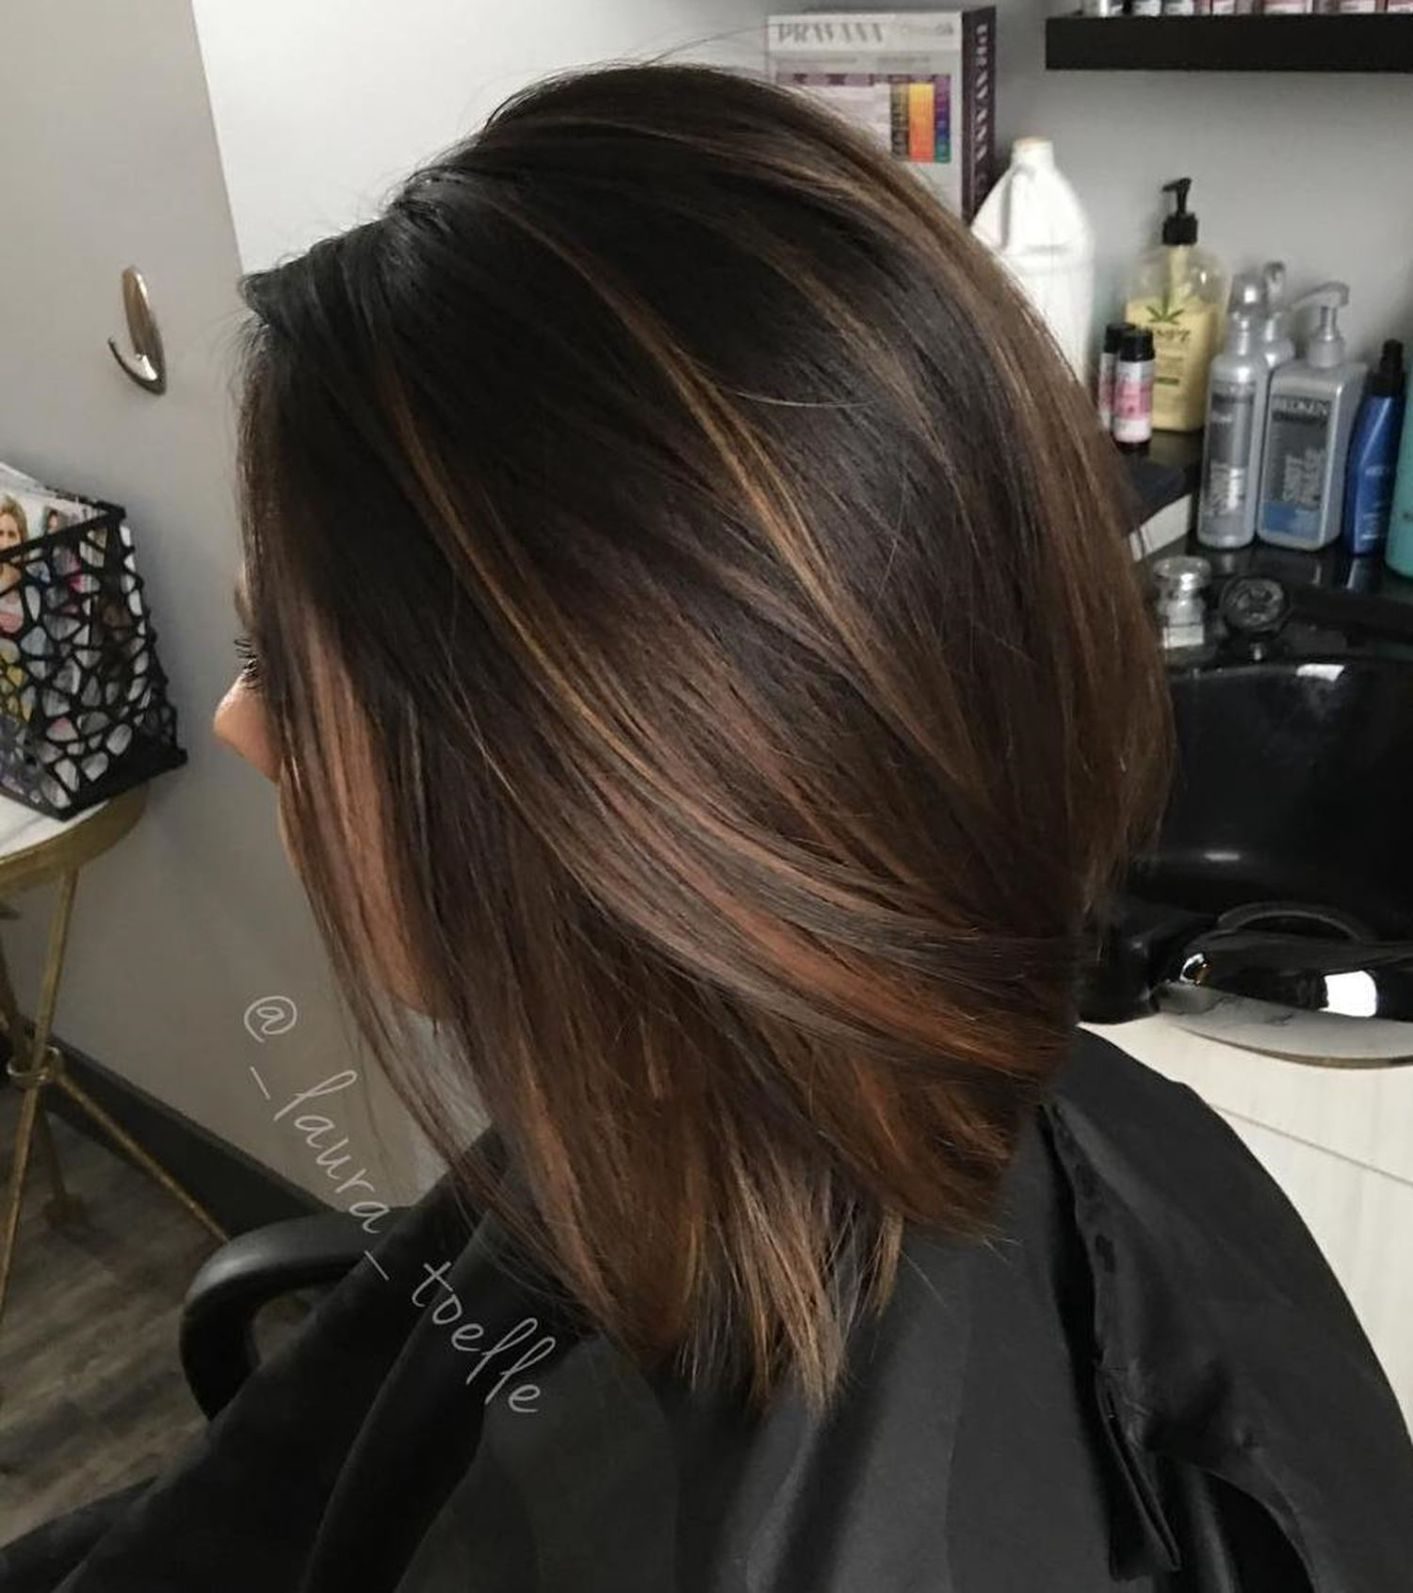 60 Hairstyles Featuring Dark Brown Hair With Highlights Brown Bob Hair Hair Styles Balayage Straight Hair